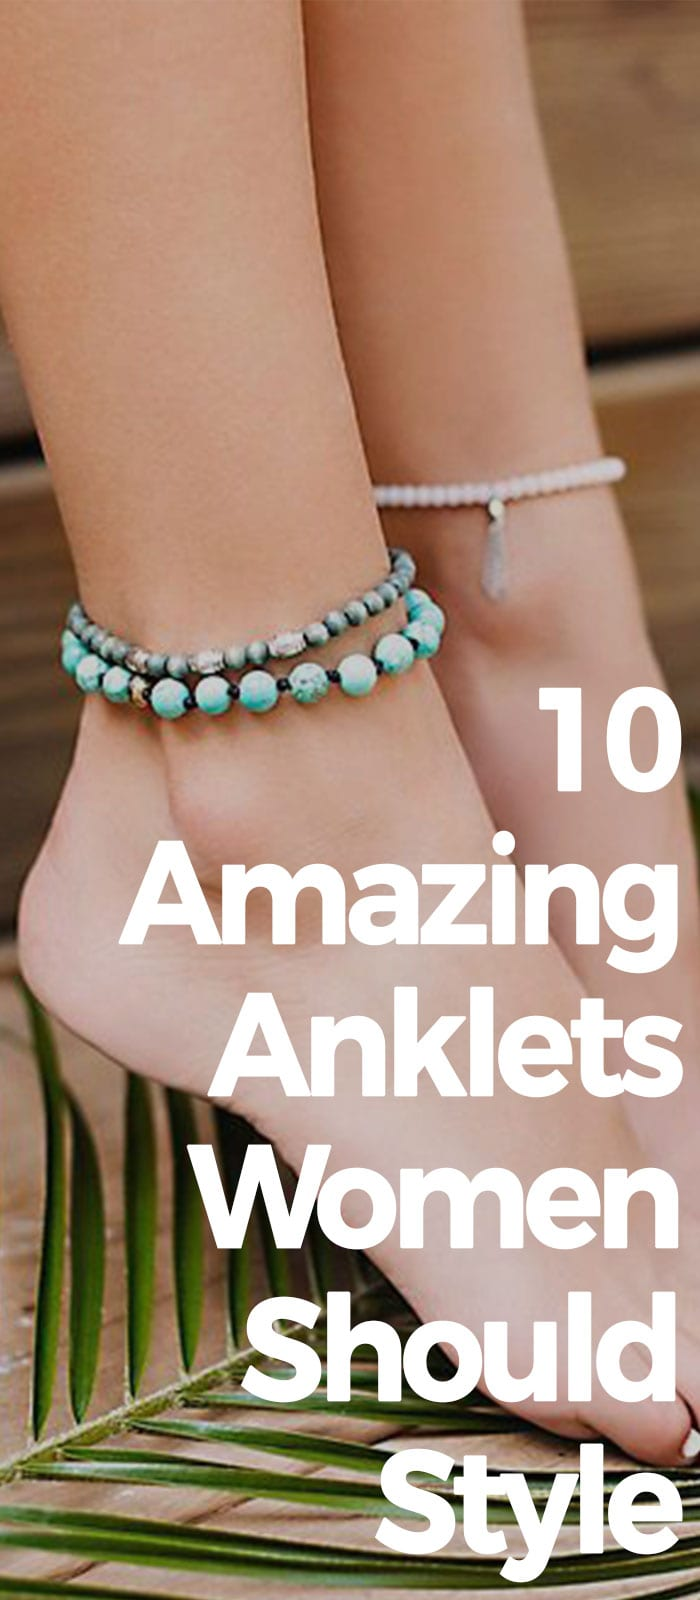 10 Amazing Anklets Women Should Style!